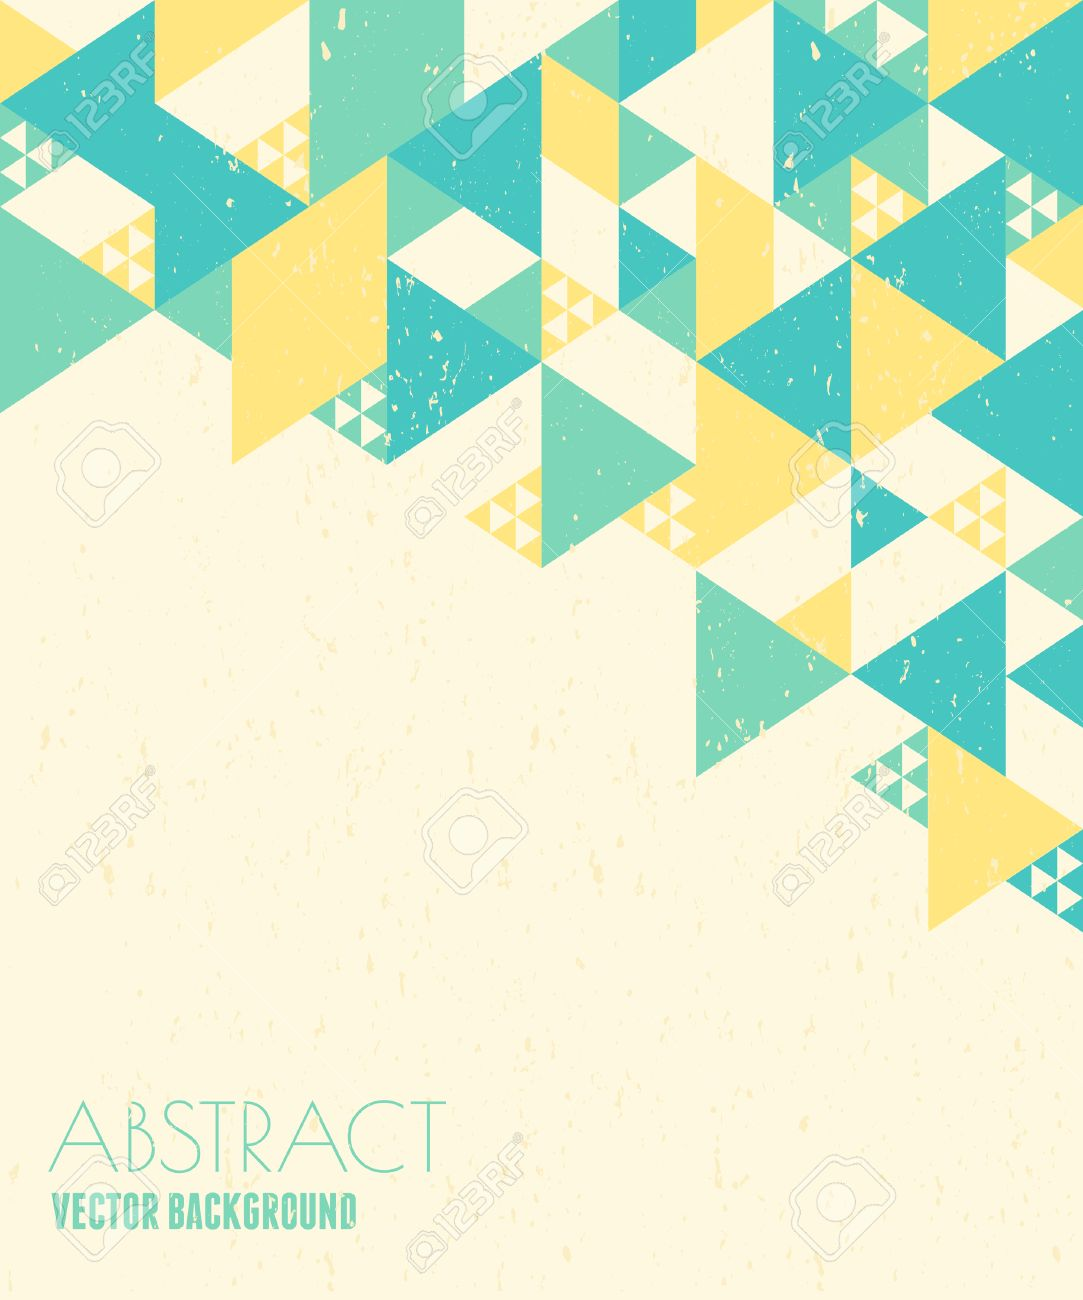 Design Geometric Abstract Geometric Design In Blue Yellow And White With Copy .